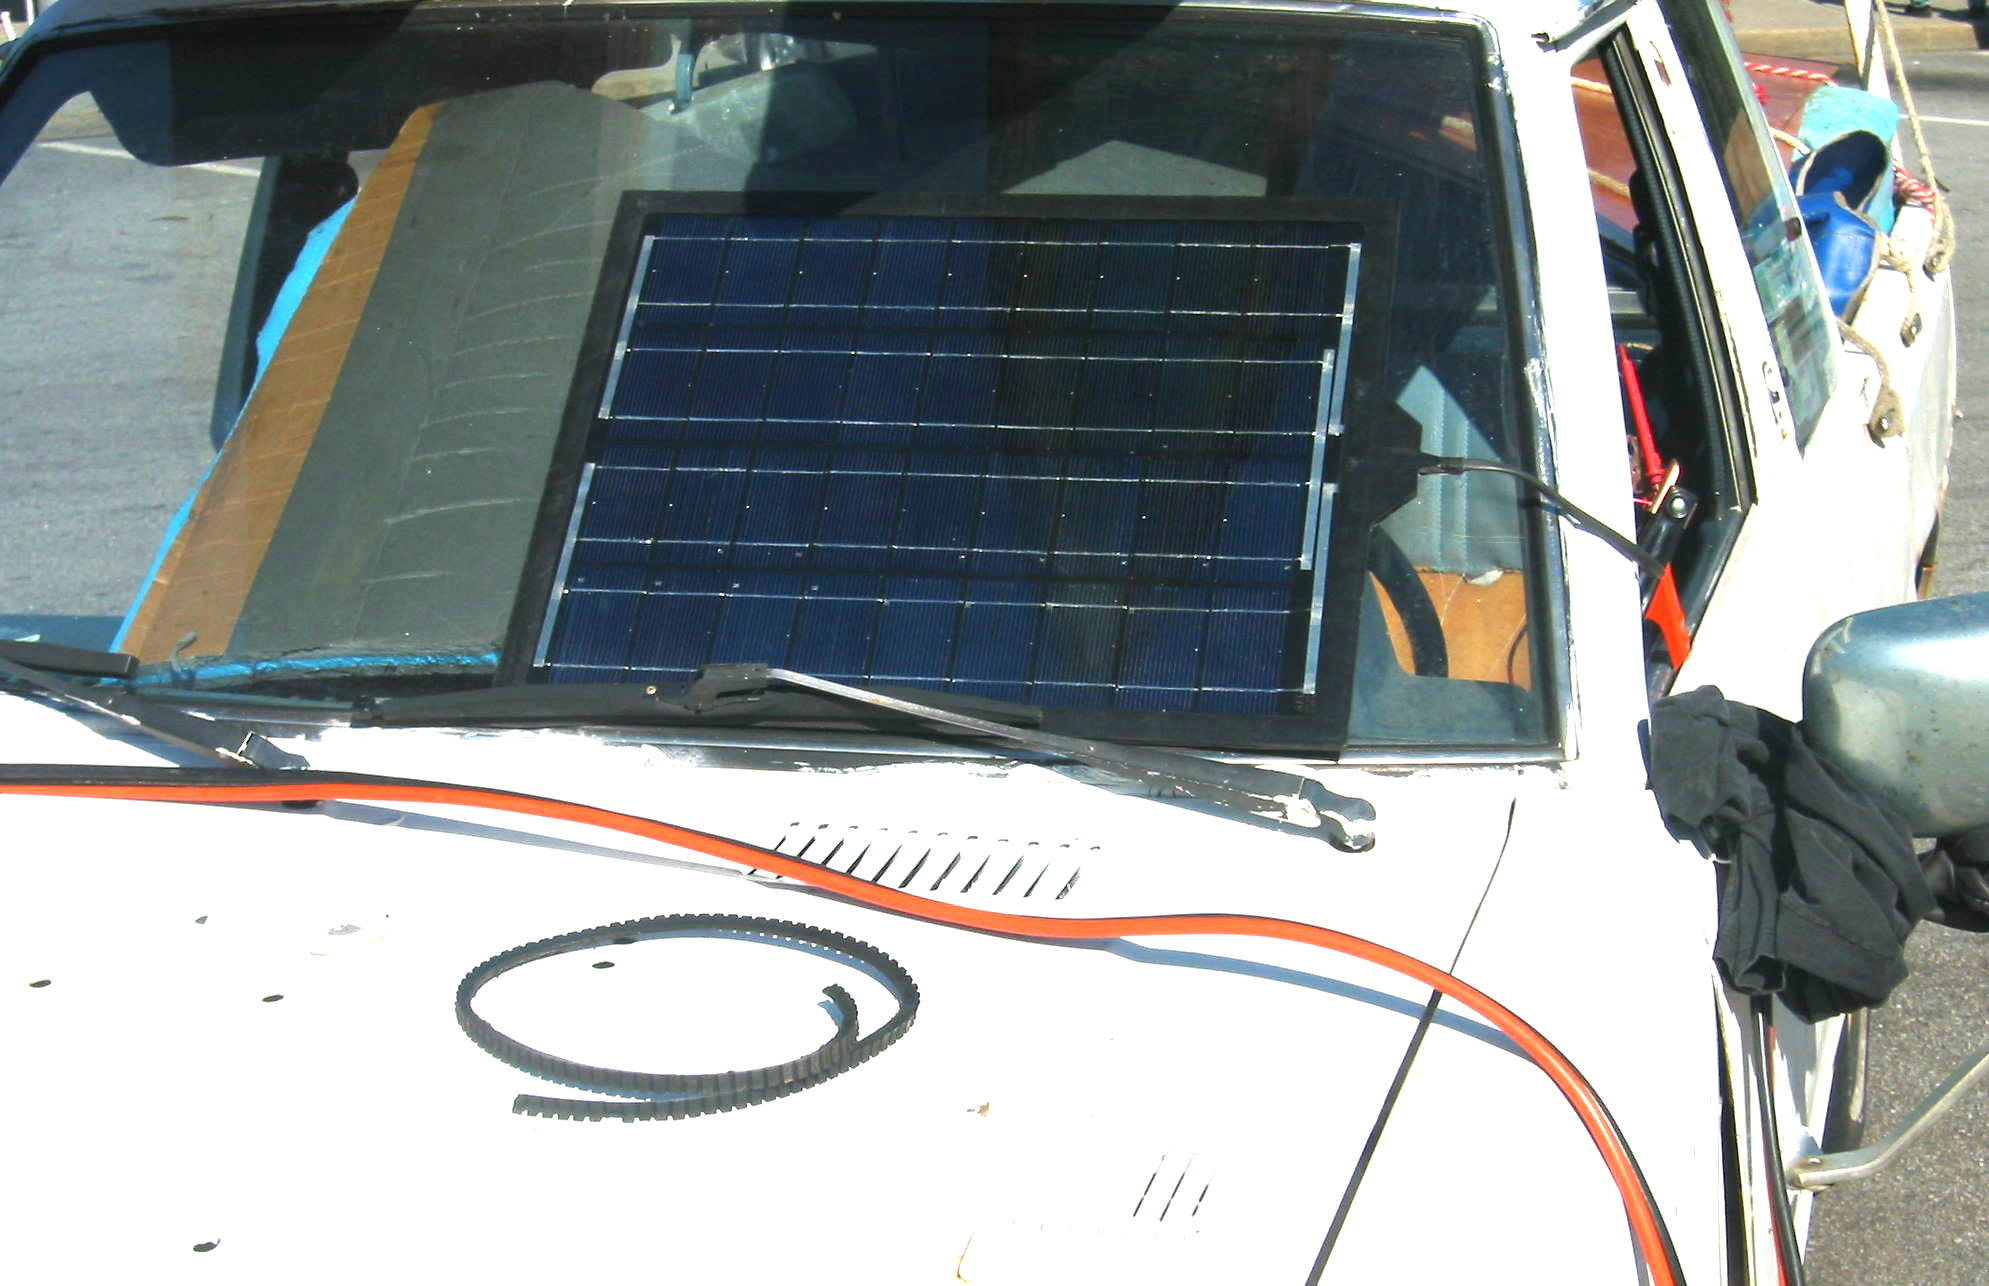 Solar Car Battery Charger Diy 5 Steps Here Is A Simple Circuit For Charging 12v The